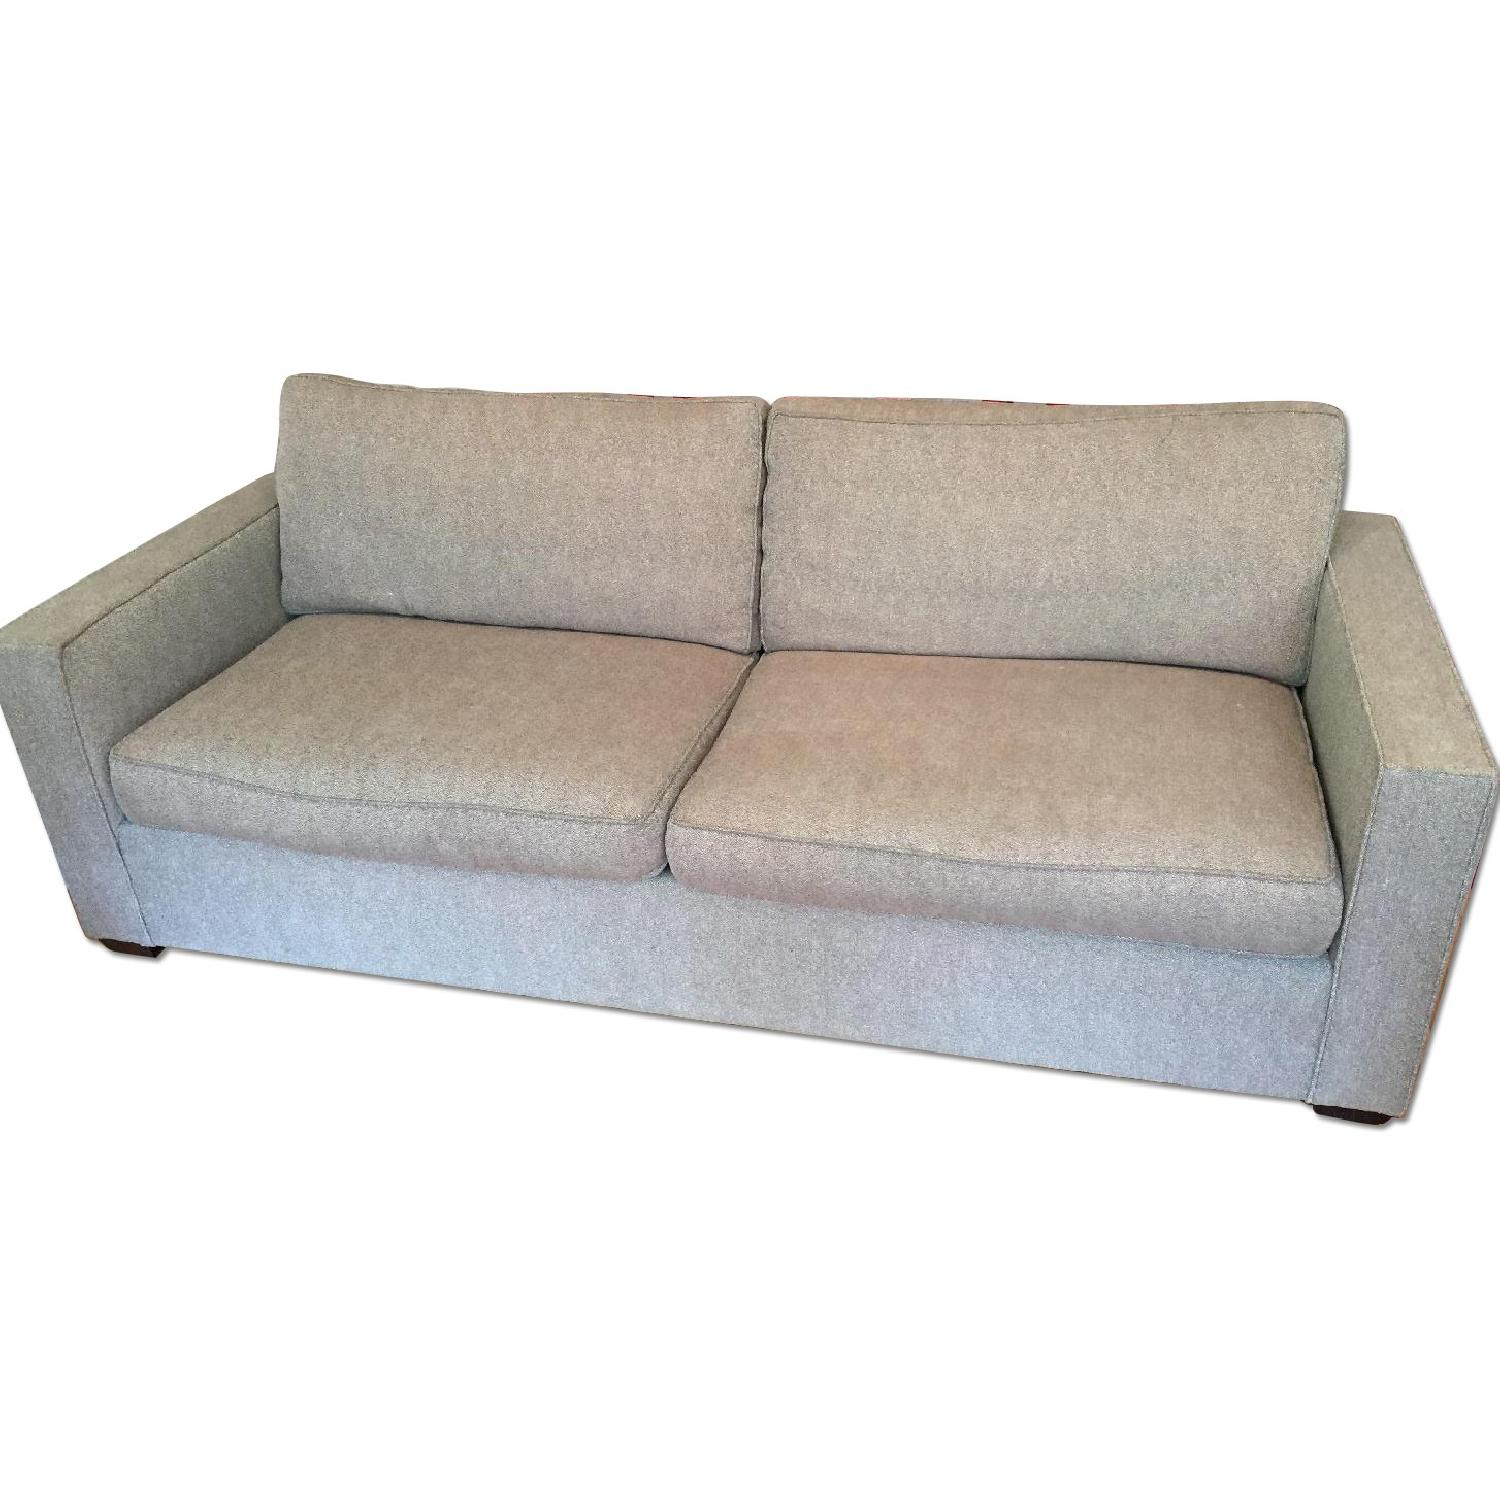 Room & Board 2 Seater Couch - image-0